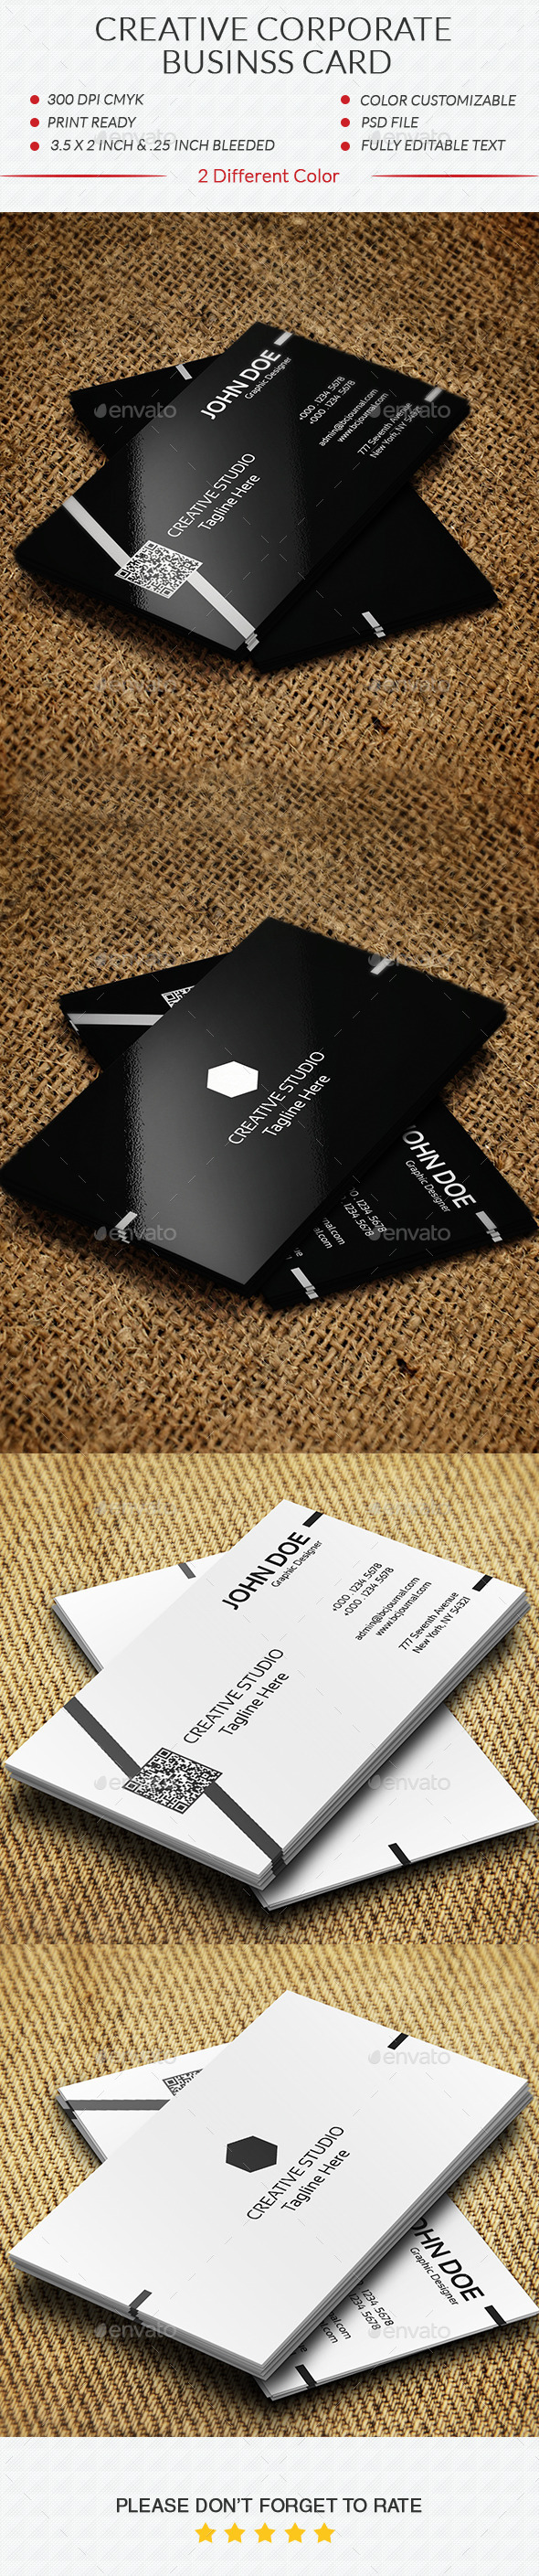 GraphicRiver Creative Corporate Business Card 10920005